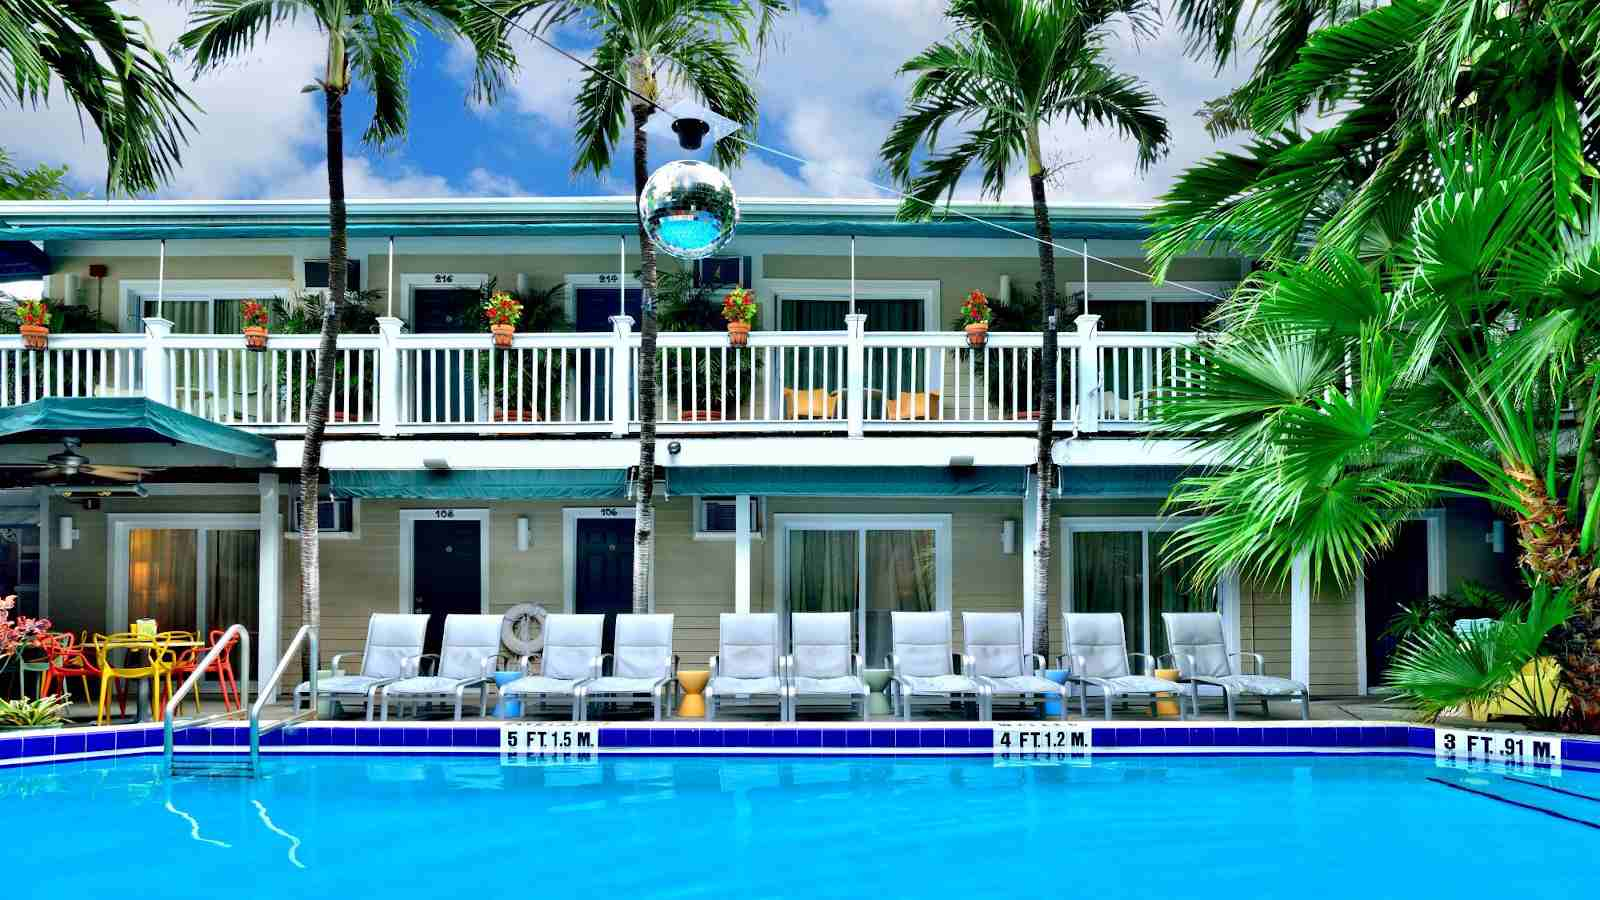 Island House is a fabulous gay resort in Key West that's clothing-optional and men-only!